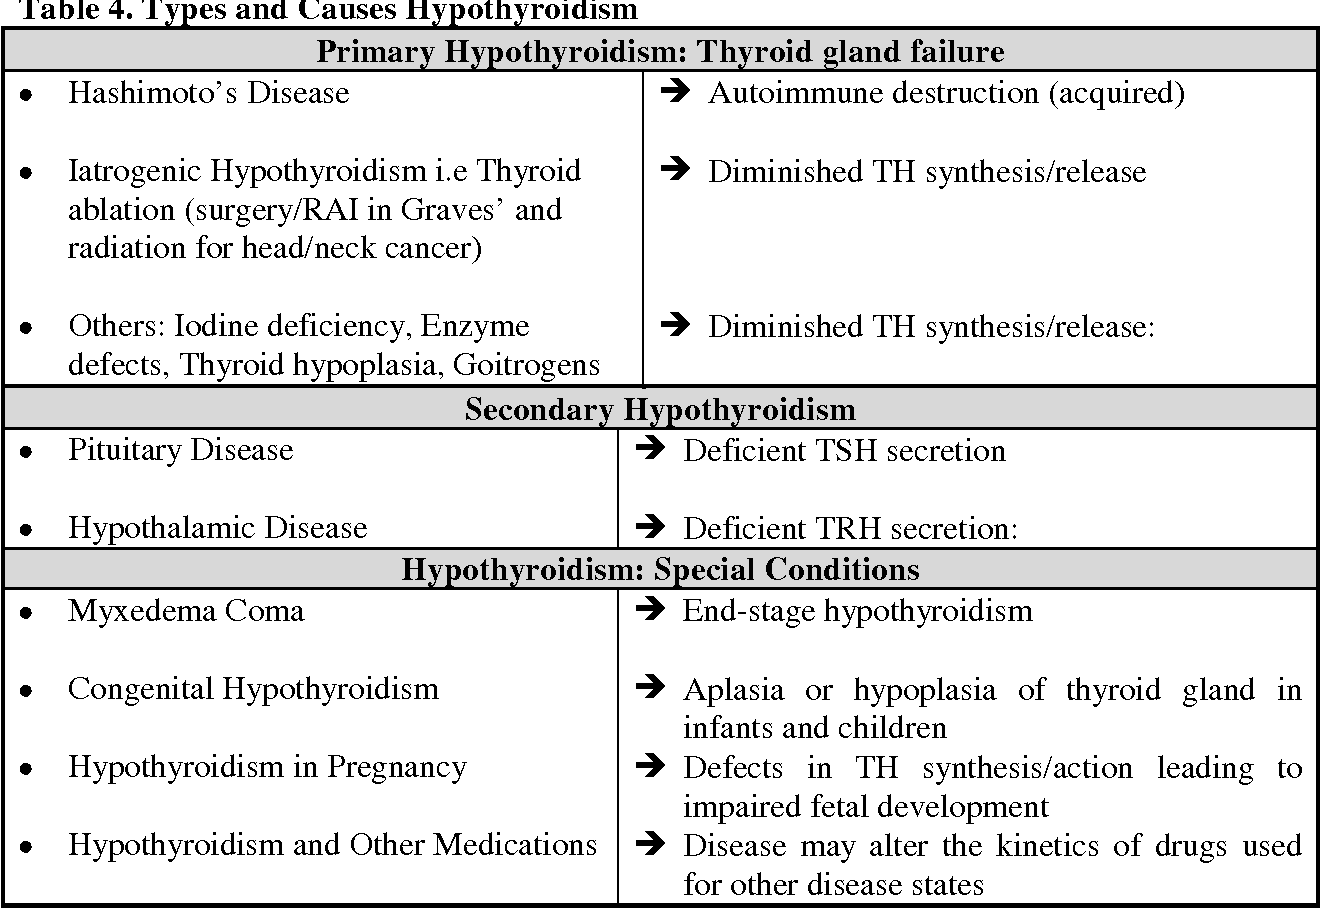 Table 4 from Thyroid Hormone Tutorial: Thyroid Pathology